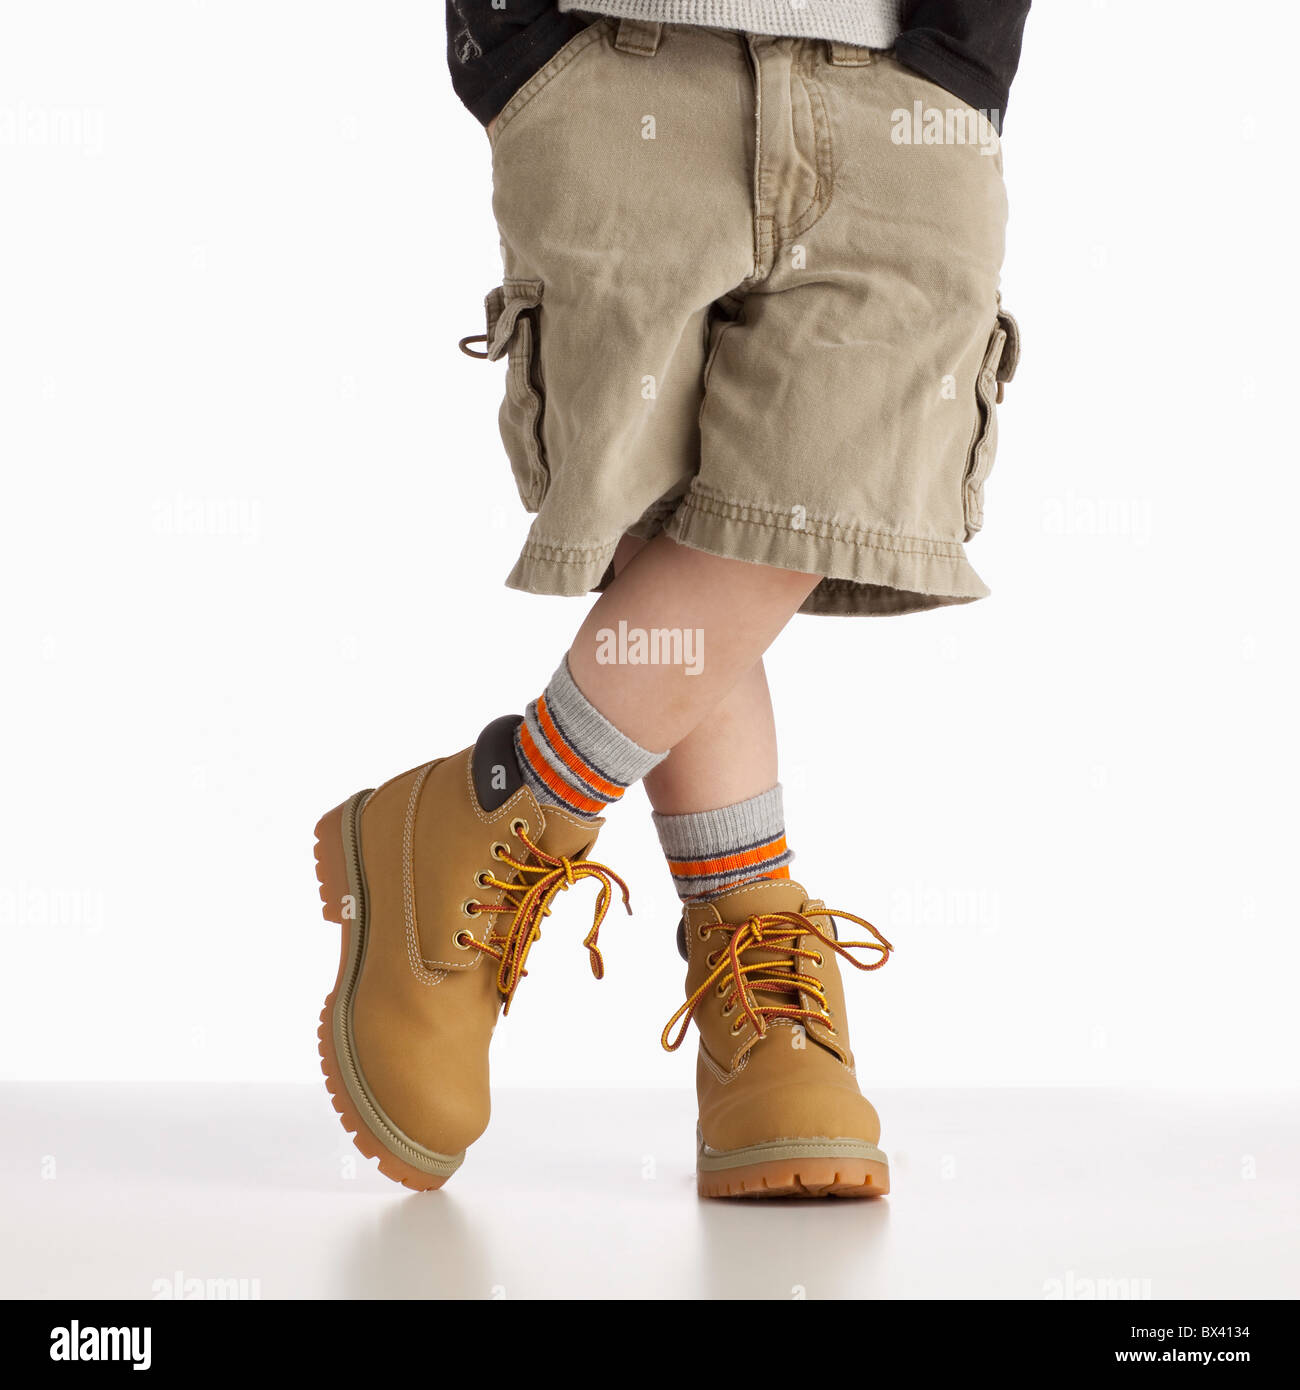 A Boy Wearing Work Boots - Stock Image